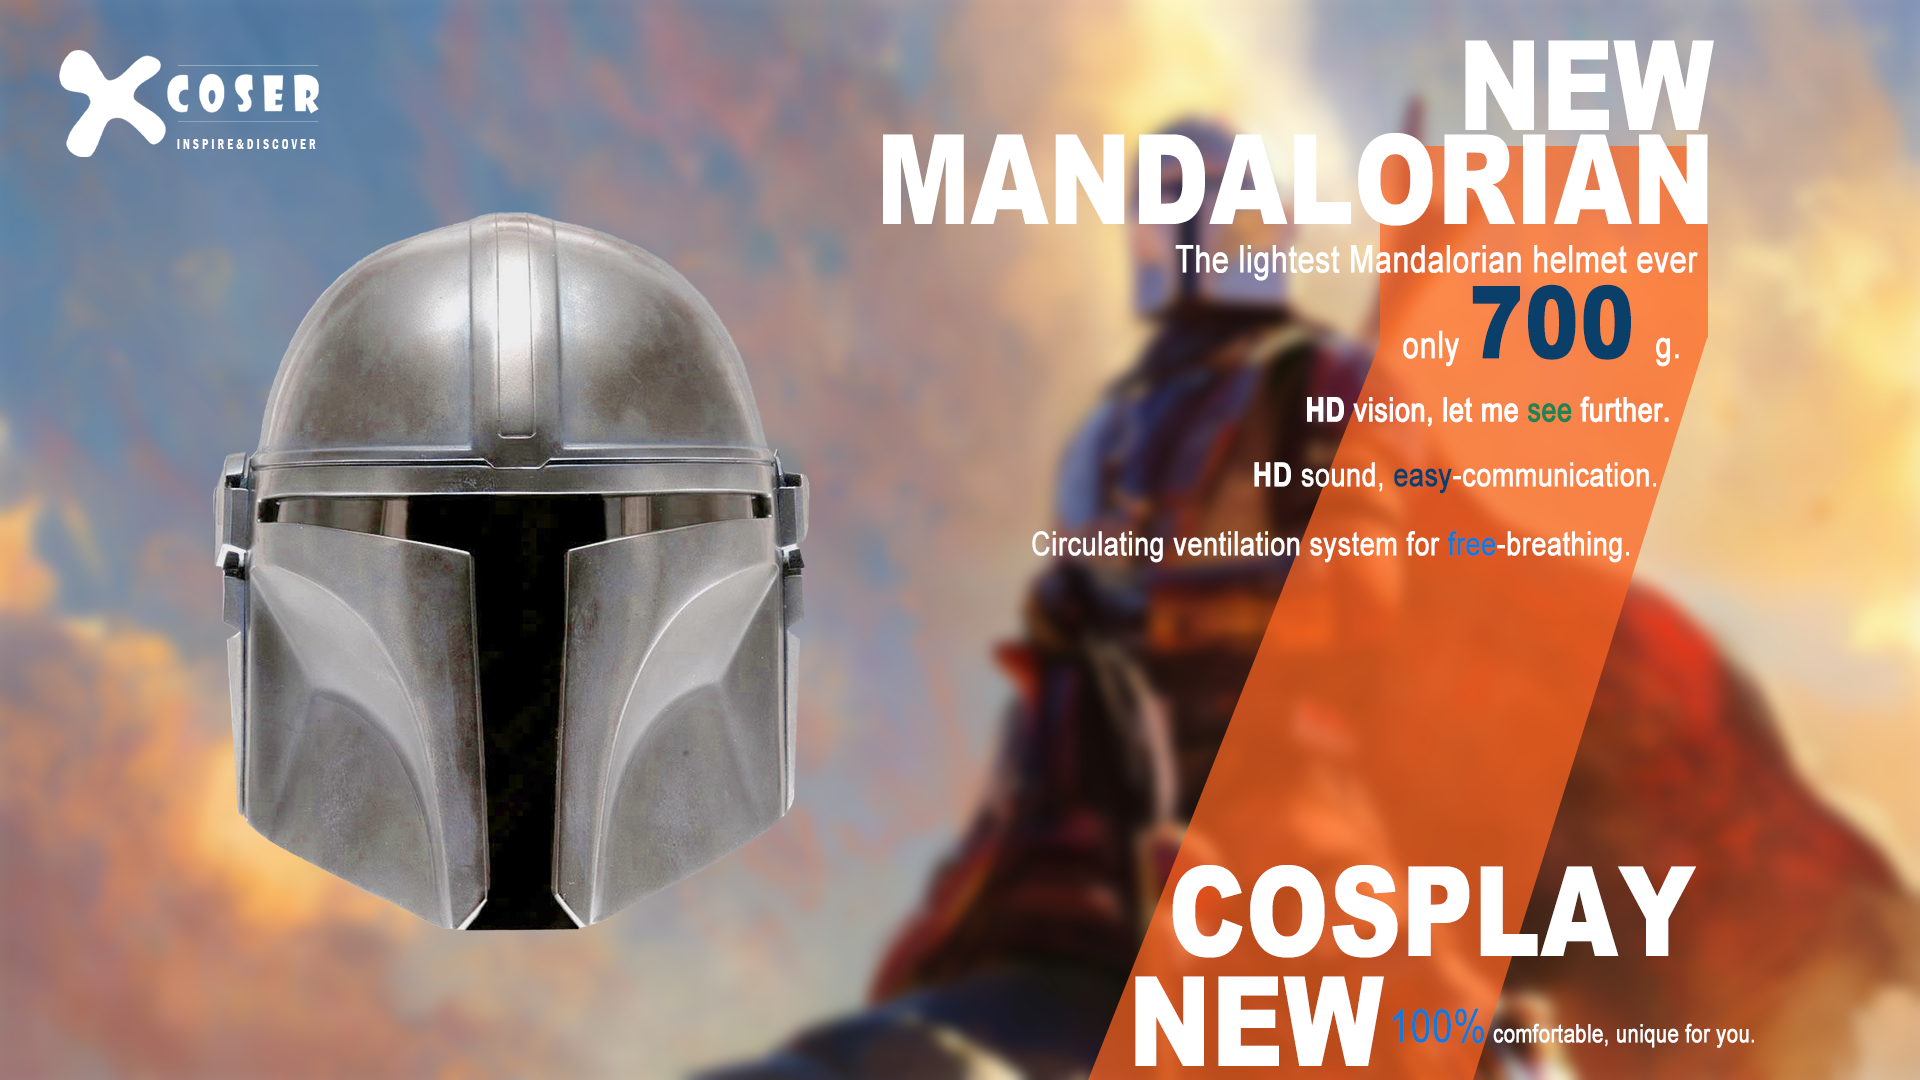 Mandalorian Helmet Features